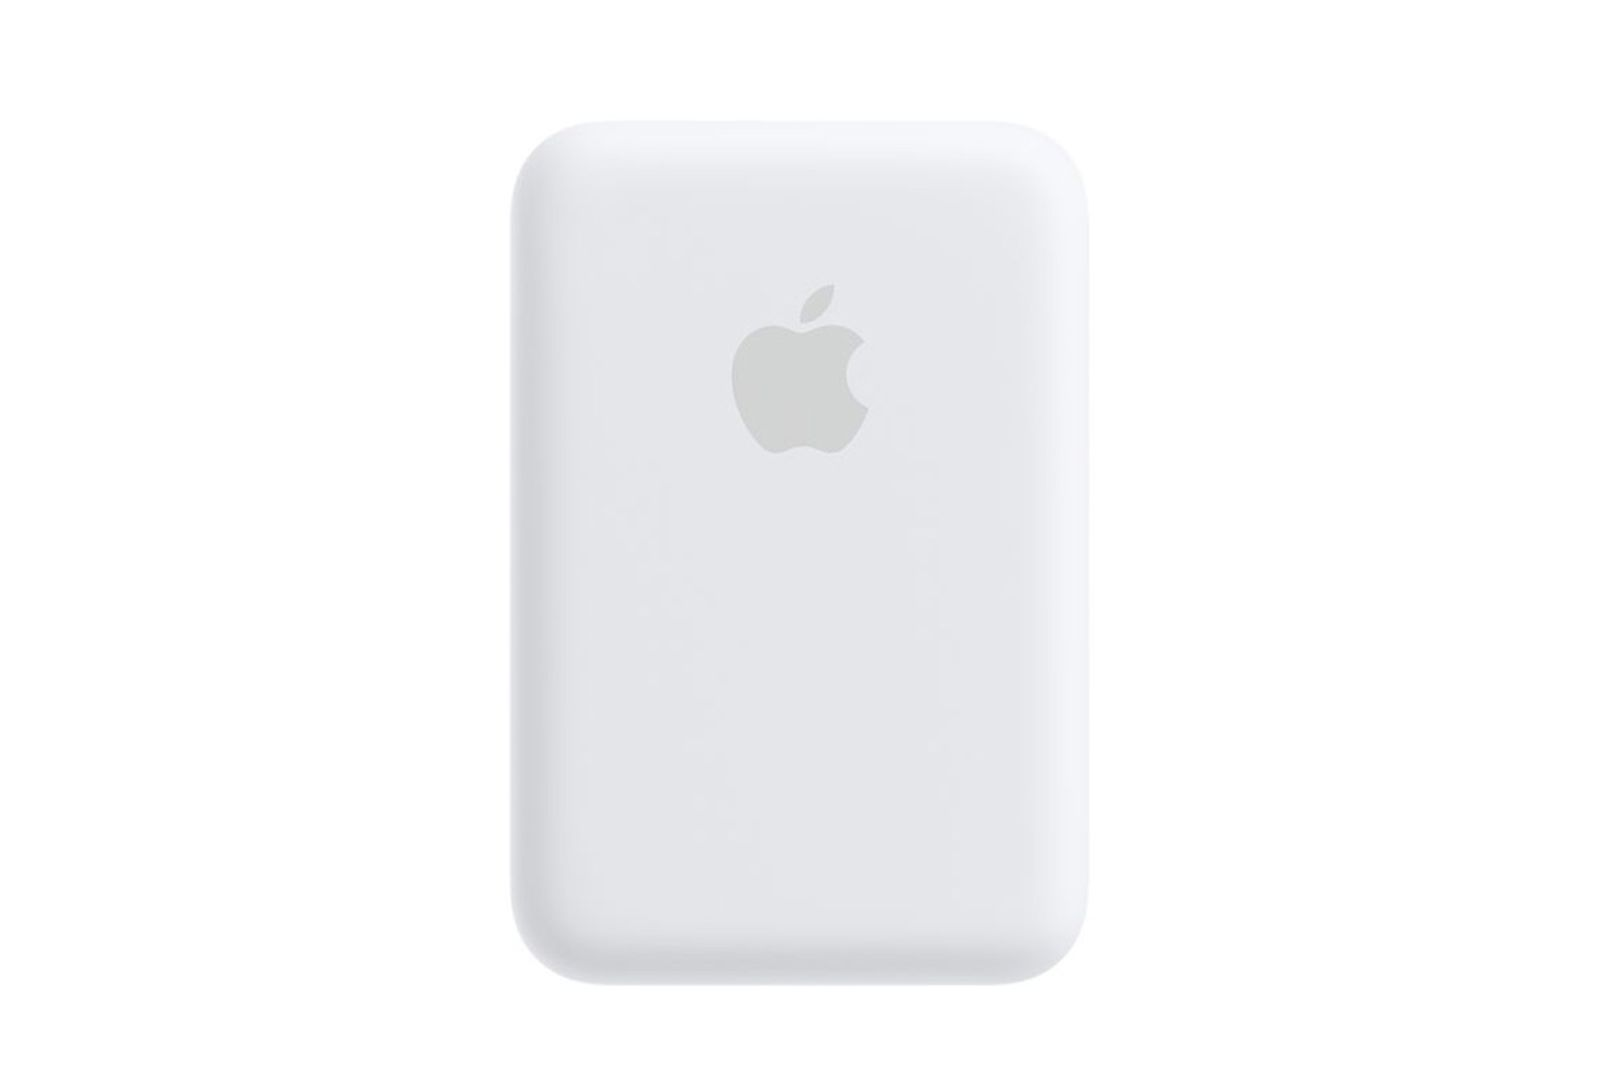 apple-magsafe-wireless-battery-pack-iphone-12-03